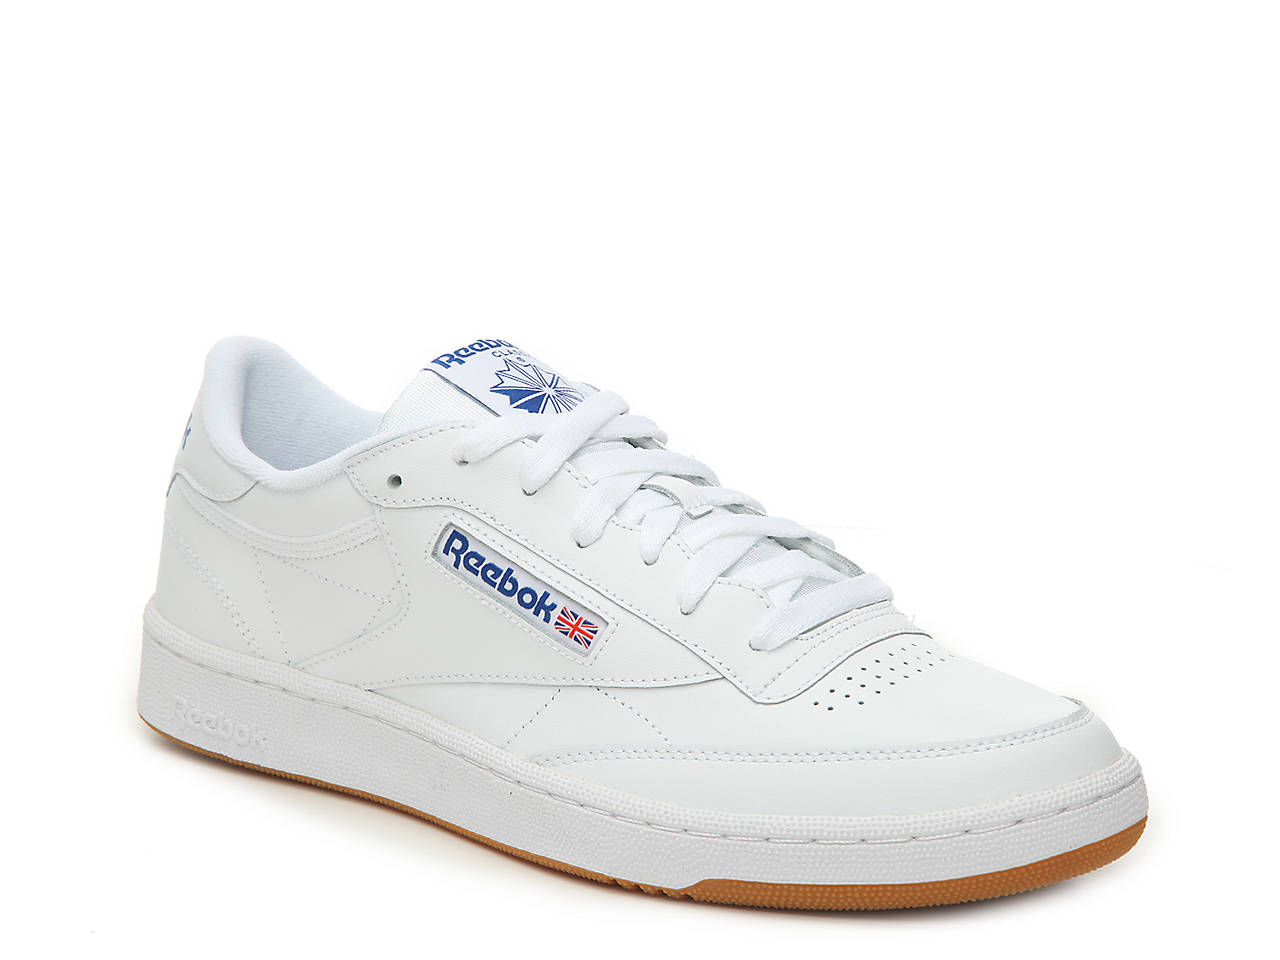 5a134d65e Reebok Club C 85 Sneaker - Men's Men's Shoes | DSW